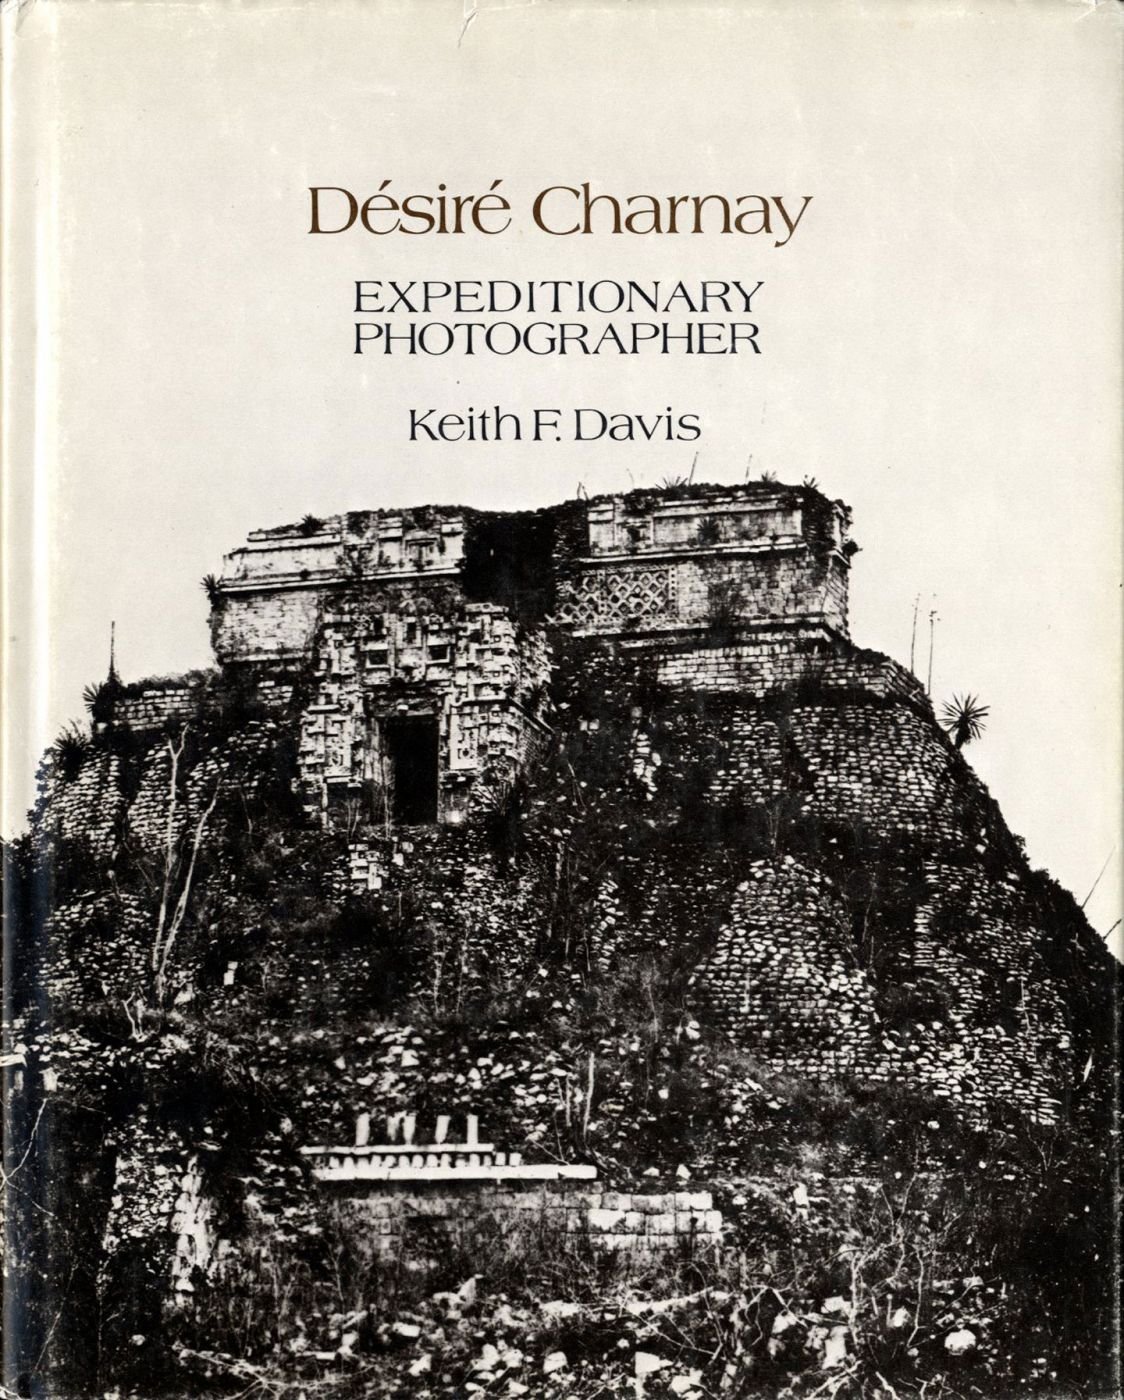 Désiré Charnay: Expeditionary Photographer